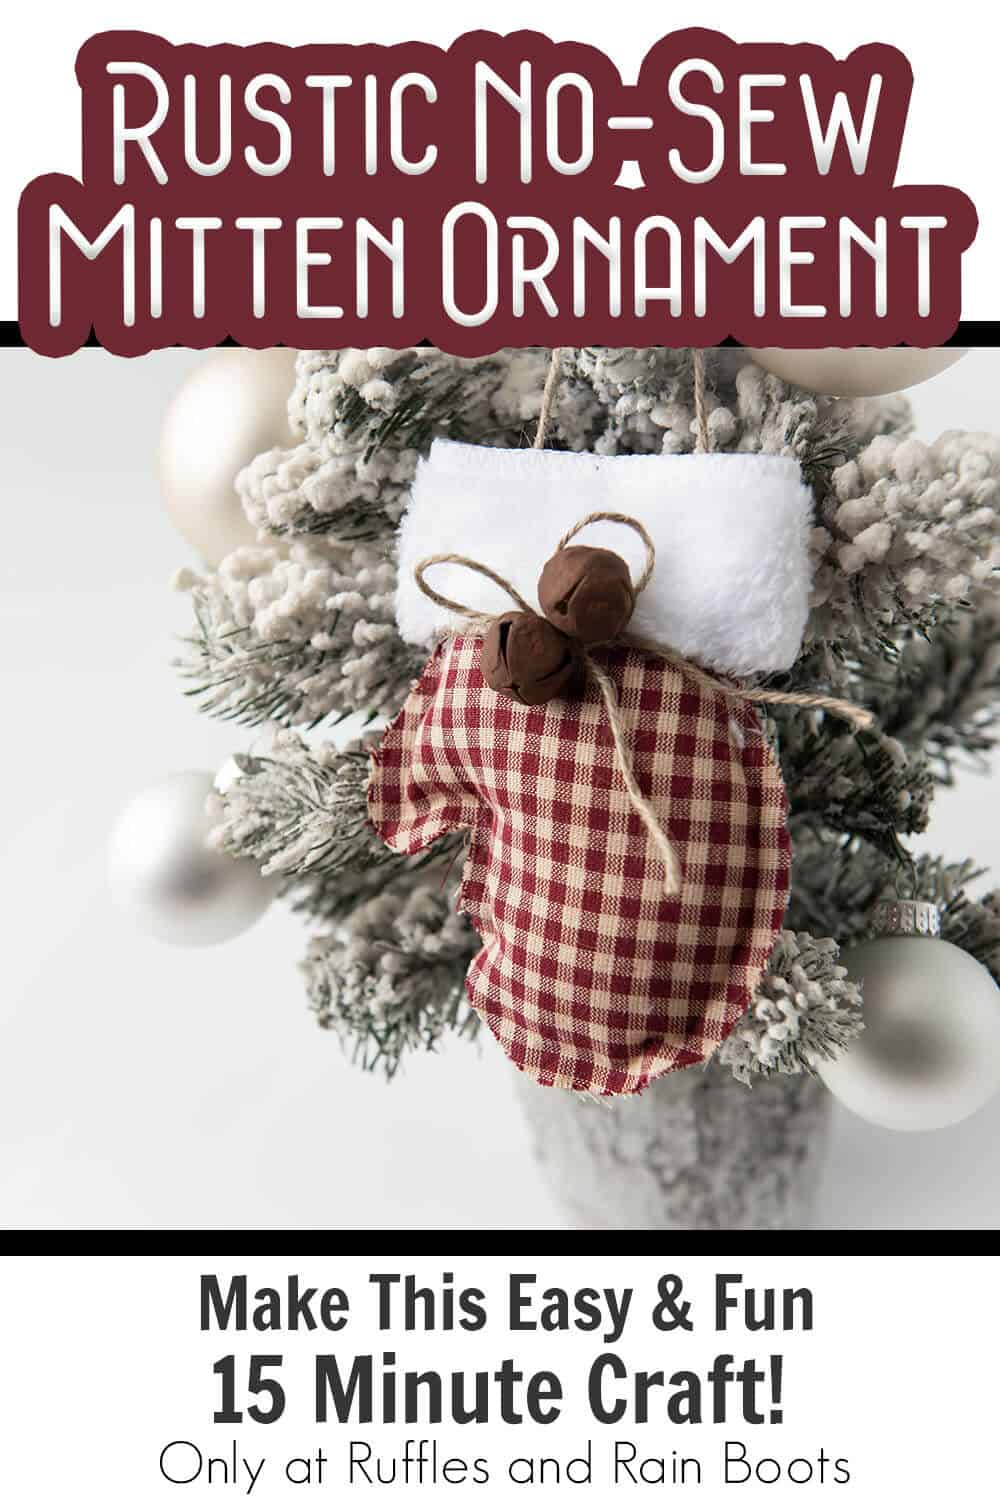 mitten ornament pattern for a rustic christmas tree with text which reads rustic no-sew mitten ornament make this easy & fun 15 minute craft!